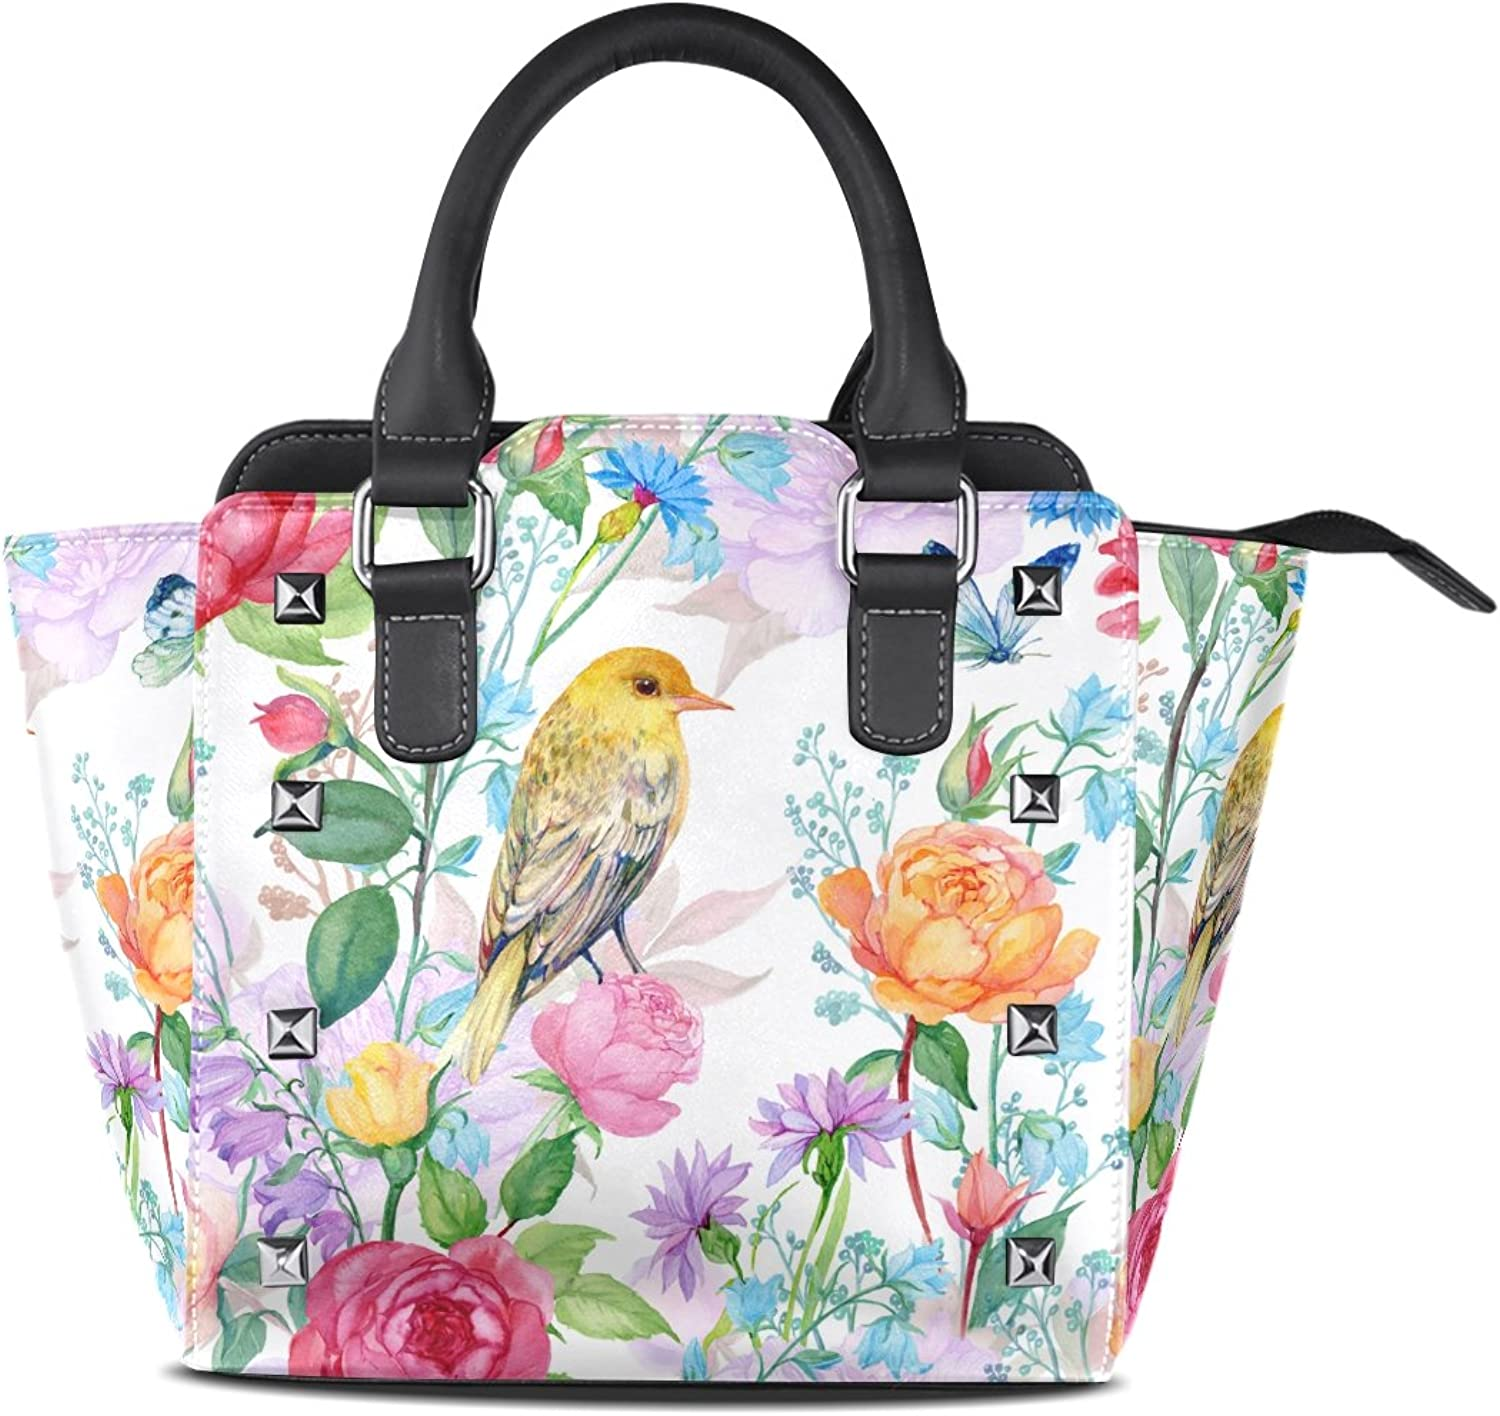 My Little Nest Women's Top Handle Satchel Handbag Floral pinks Bird Butterfly Ladies PU Leather Shoulder Bag Crossbody Bag